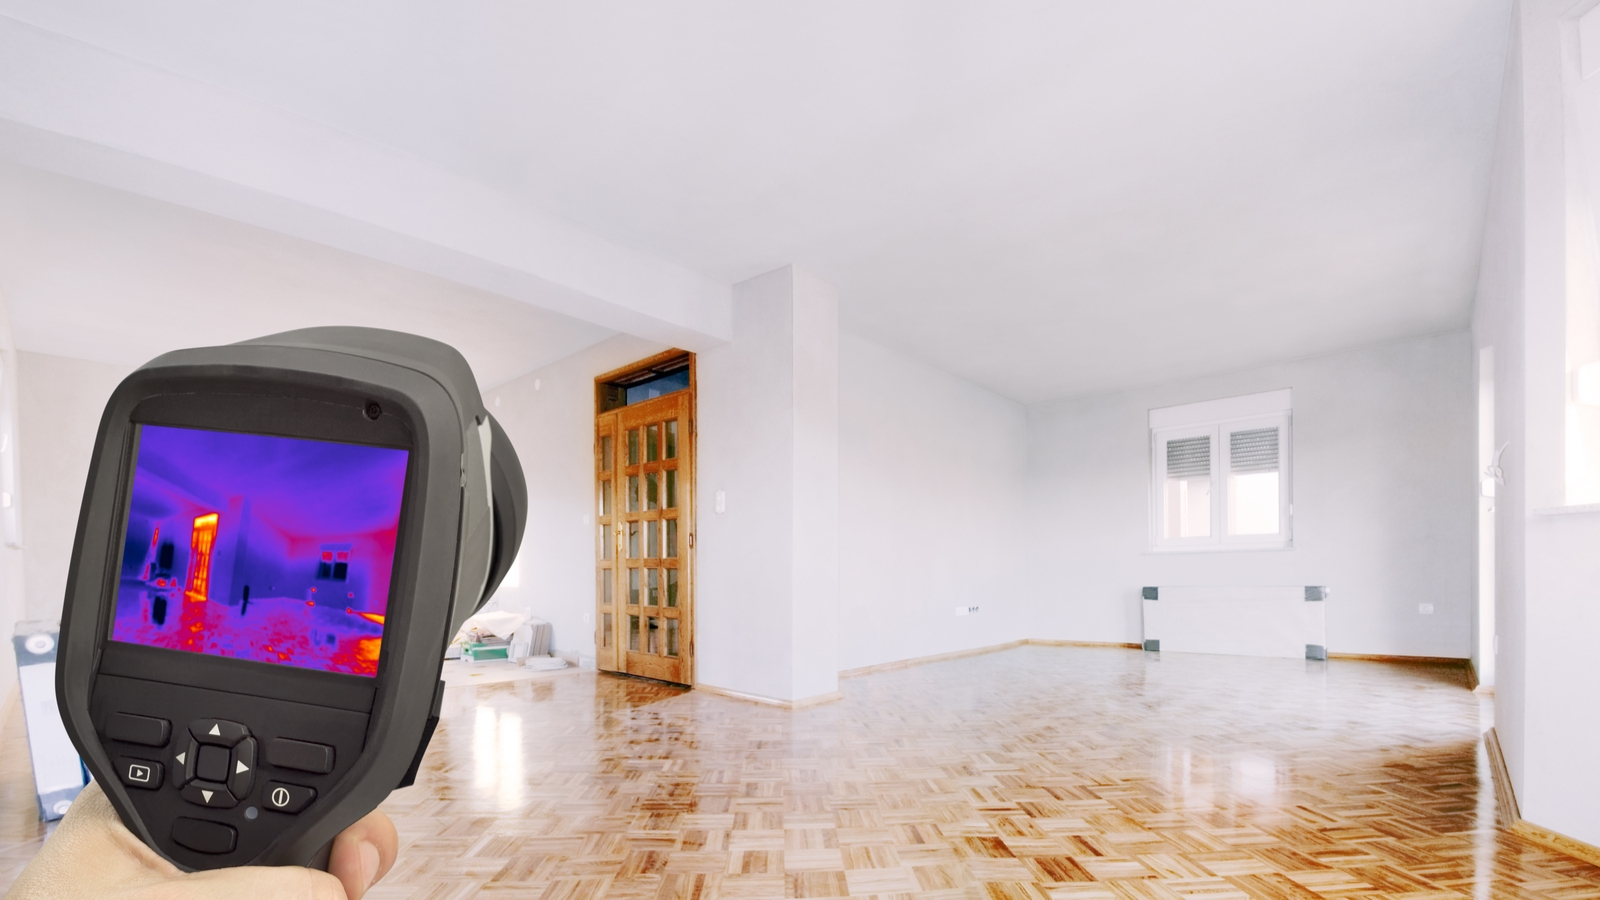 Thermal Image Camera Conducting Energy Audit in New Home